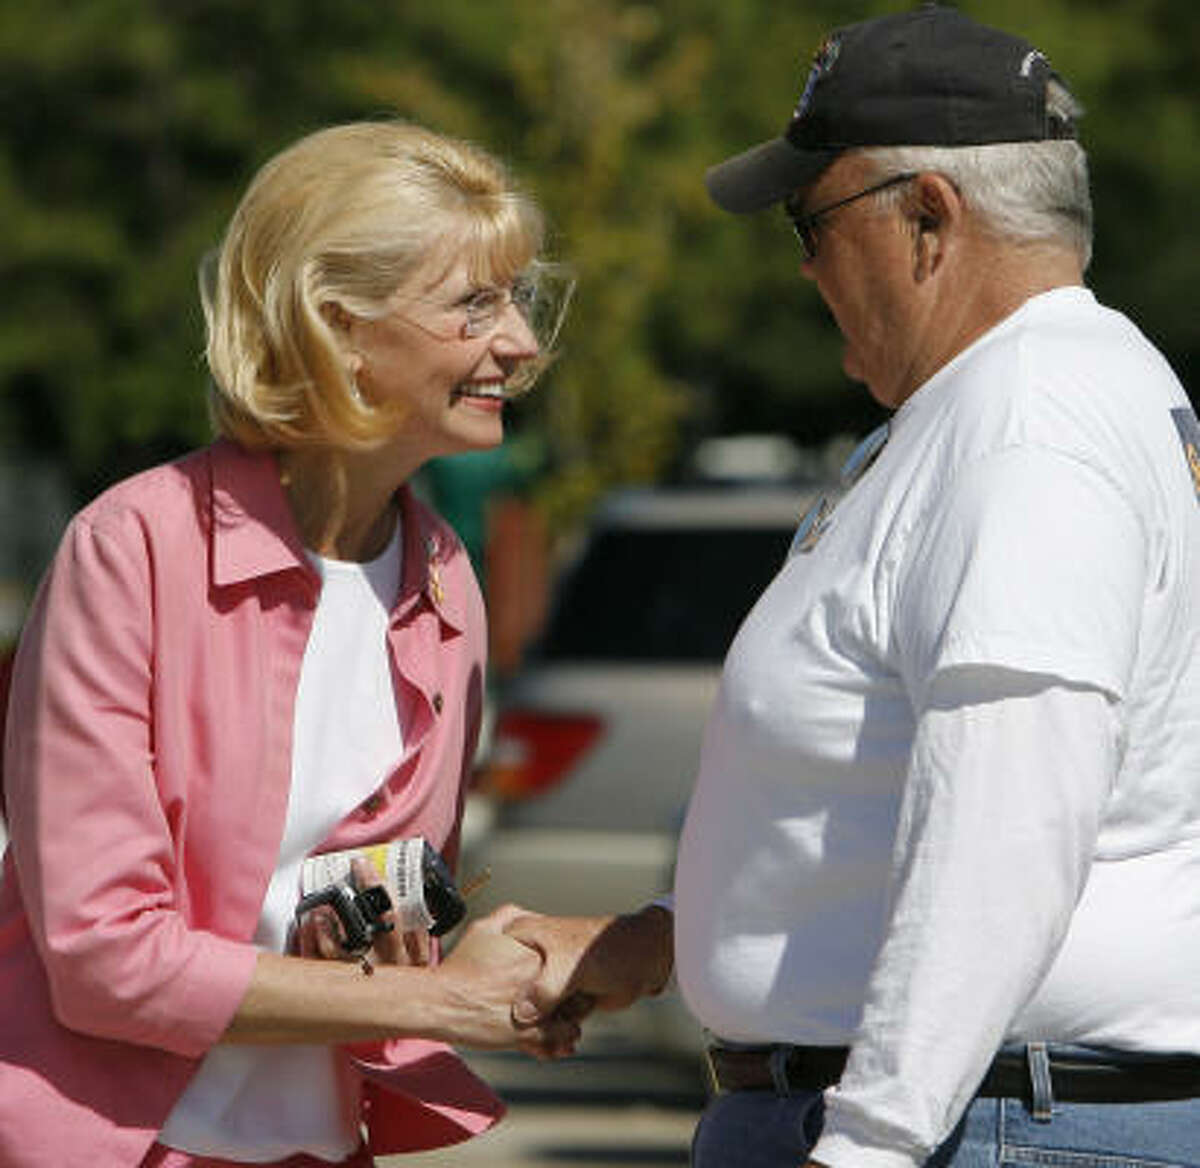 Congressional candidate Shelley Sekula Gibbs, left, talks with one of her volunteers, Bob Meaney after taking advantage of early voting at the Freeman's Branch Library in Clear Lake, Texas.